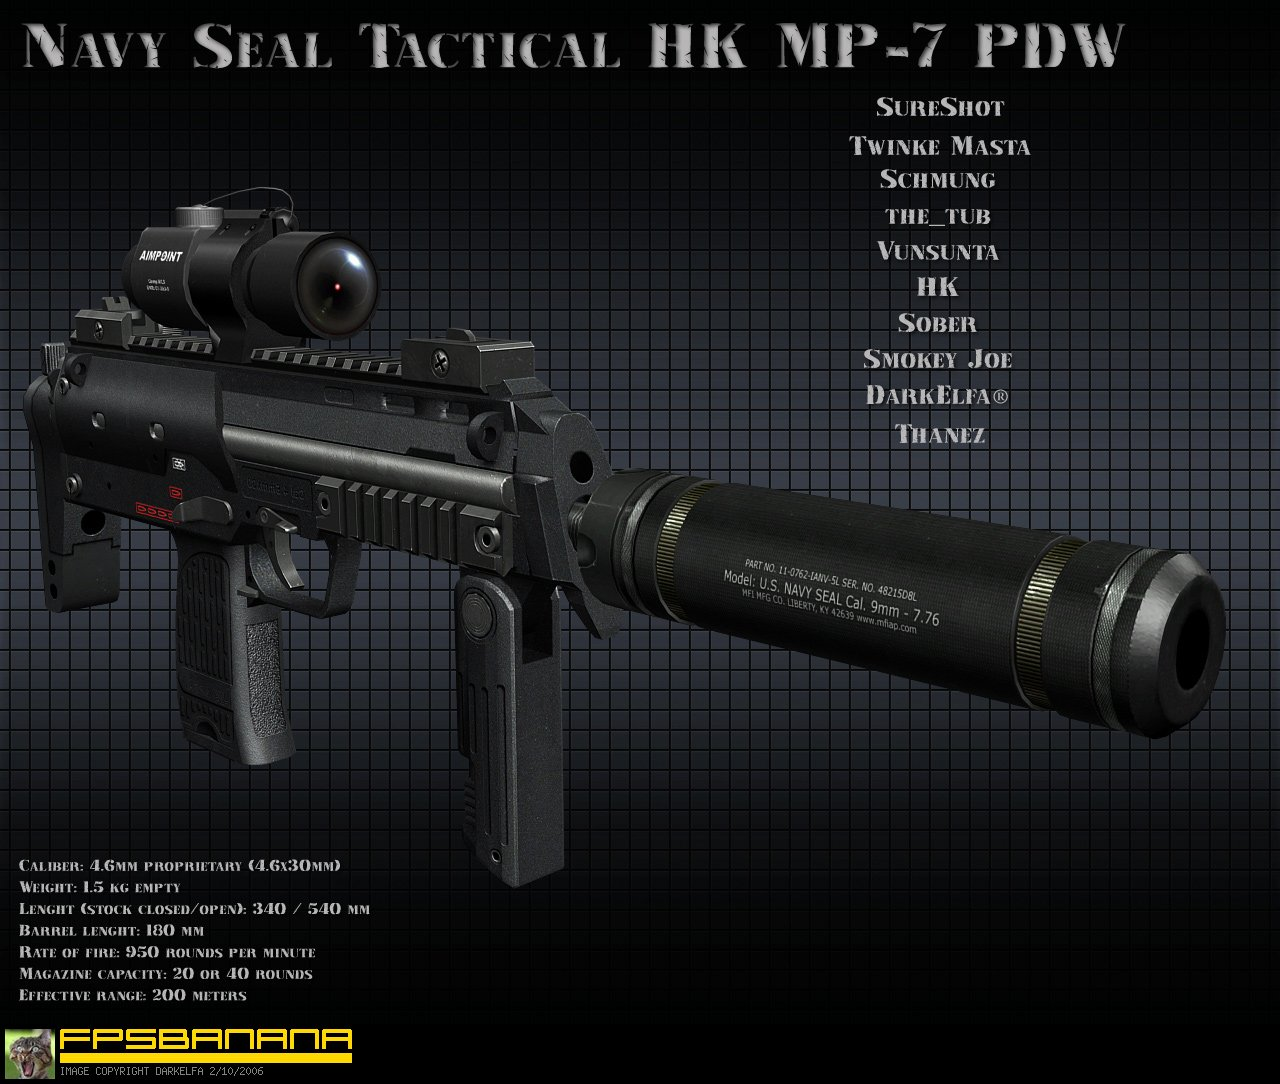 Navy Seal Tactical HK MP-7 PDW